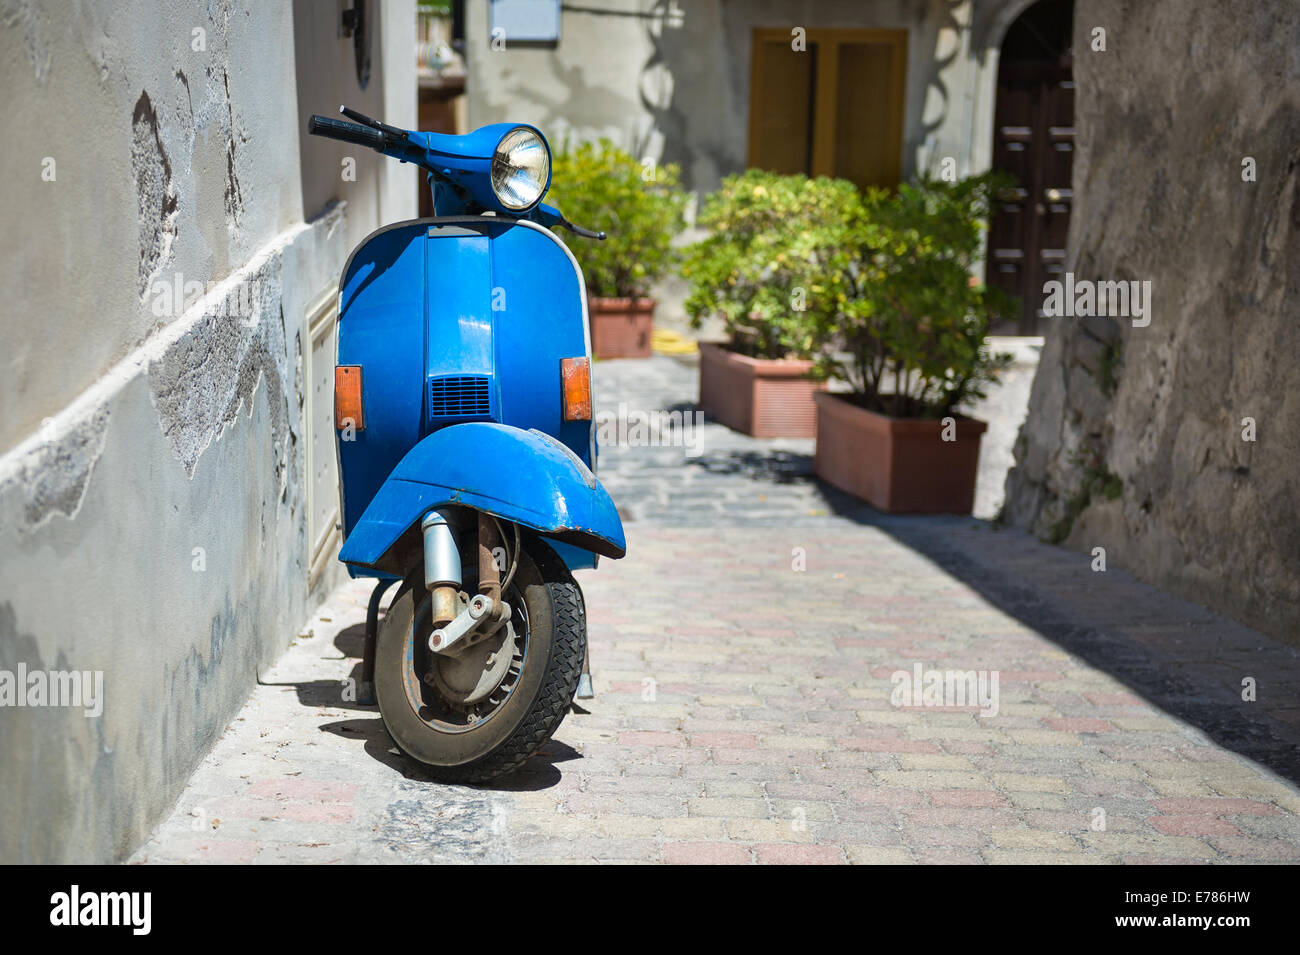 Retro blue scooter - Stock Image